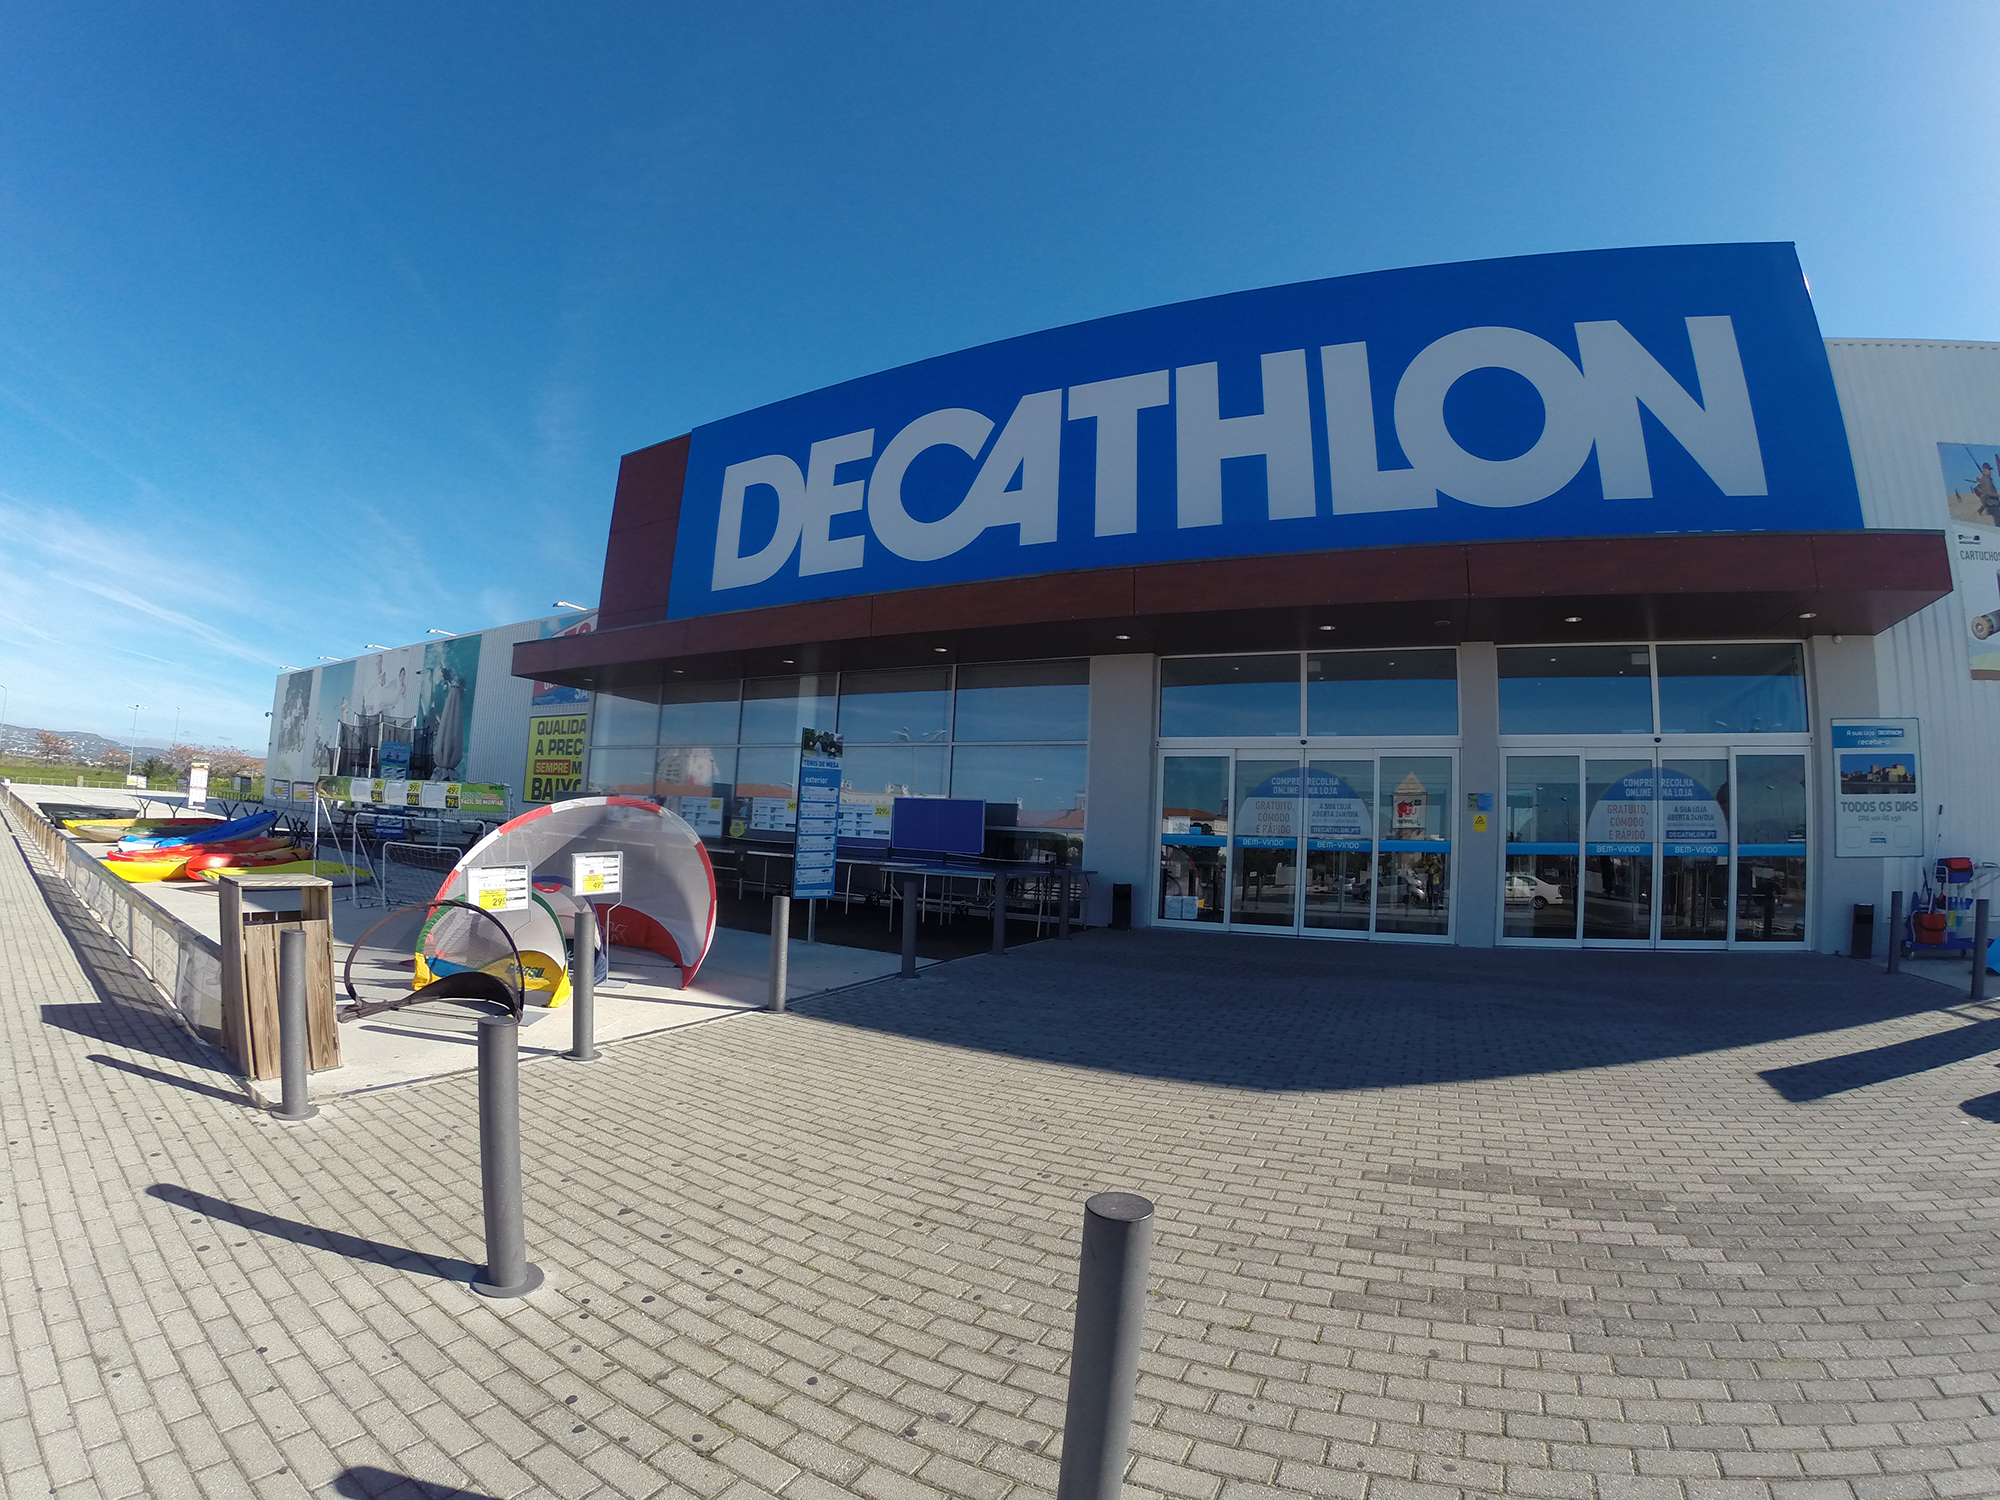 The Decathlon, in Faro, where I bought my biking gloves.